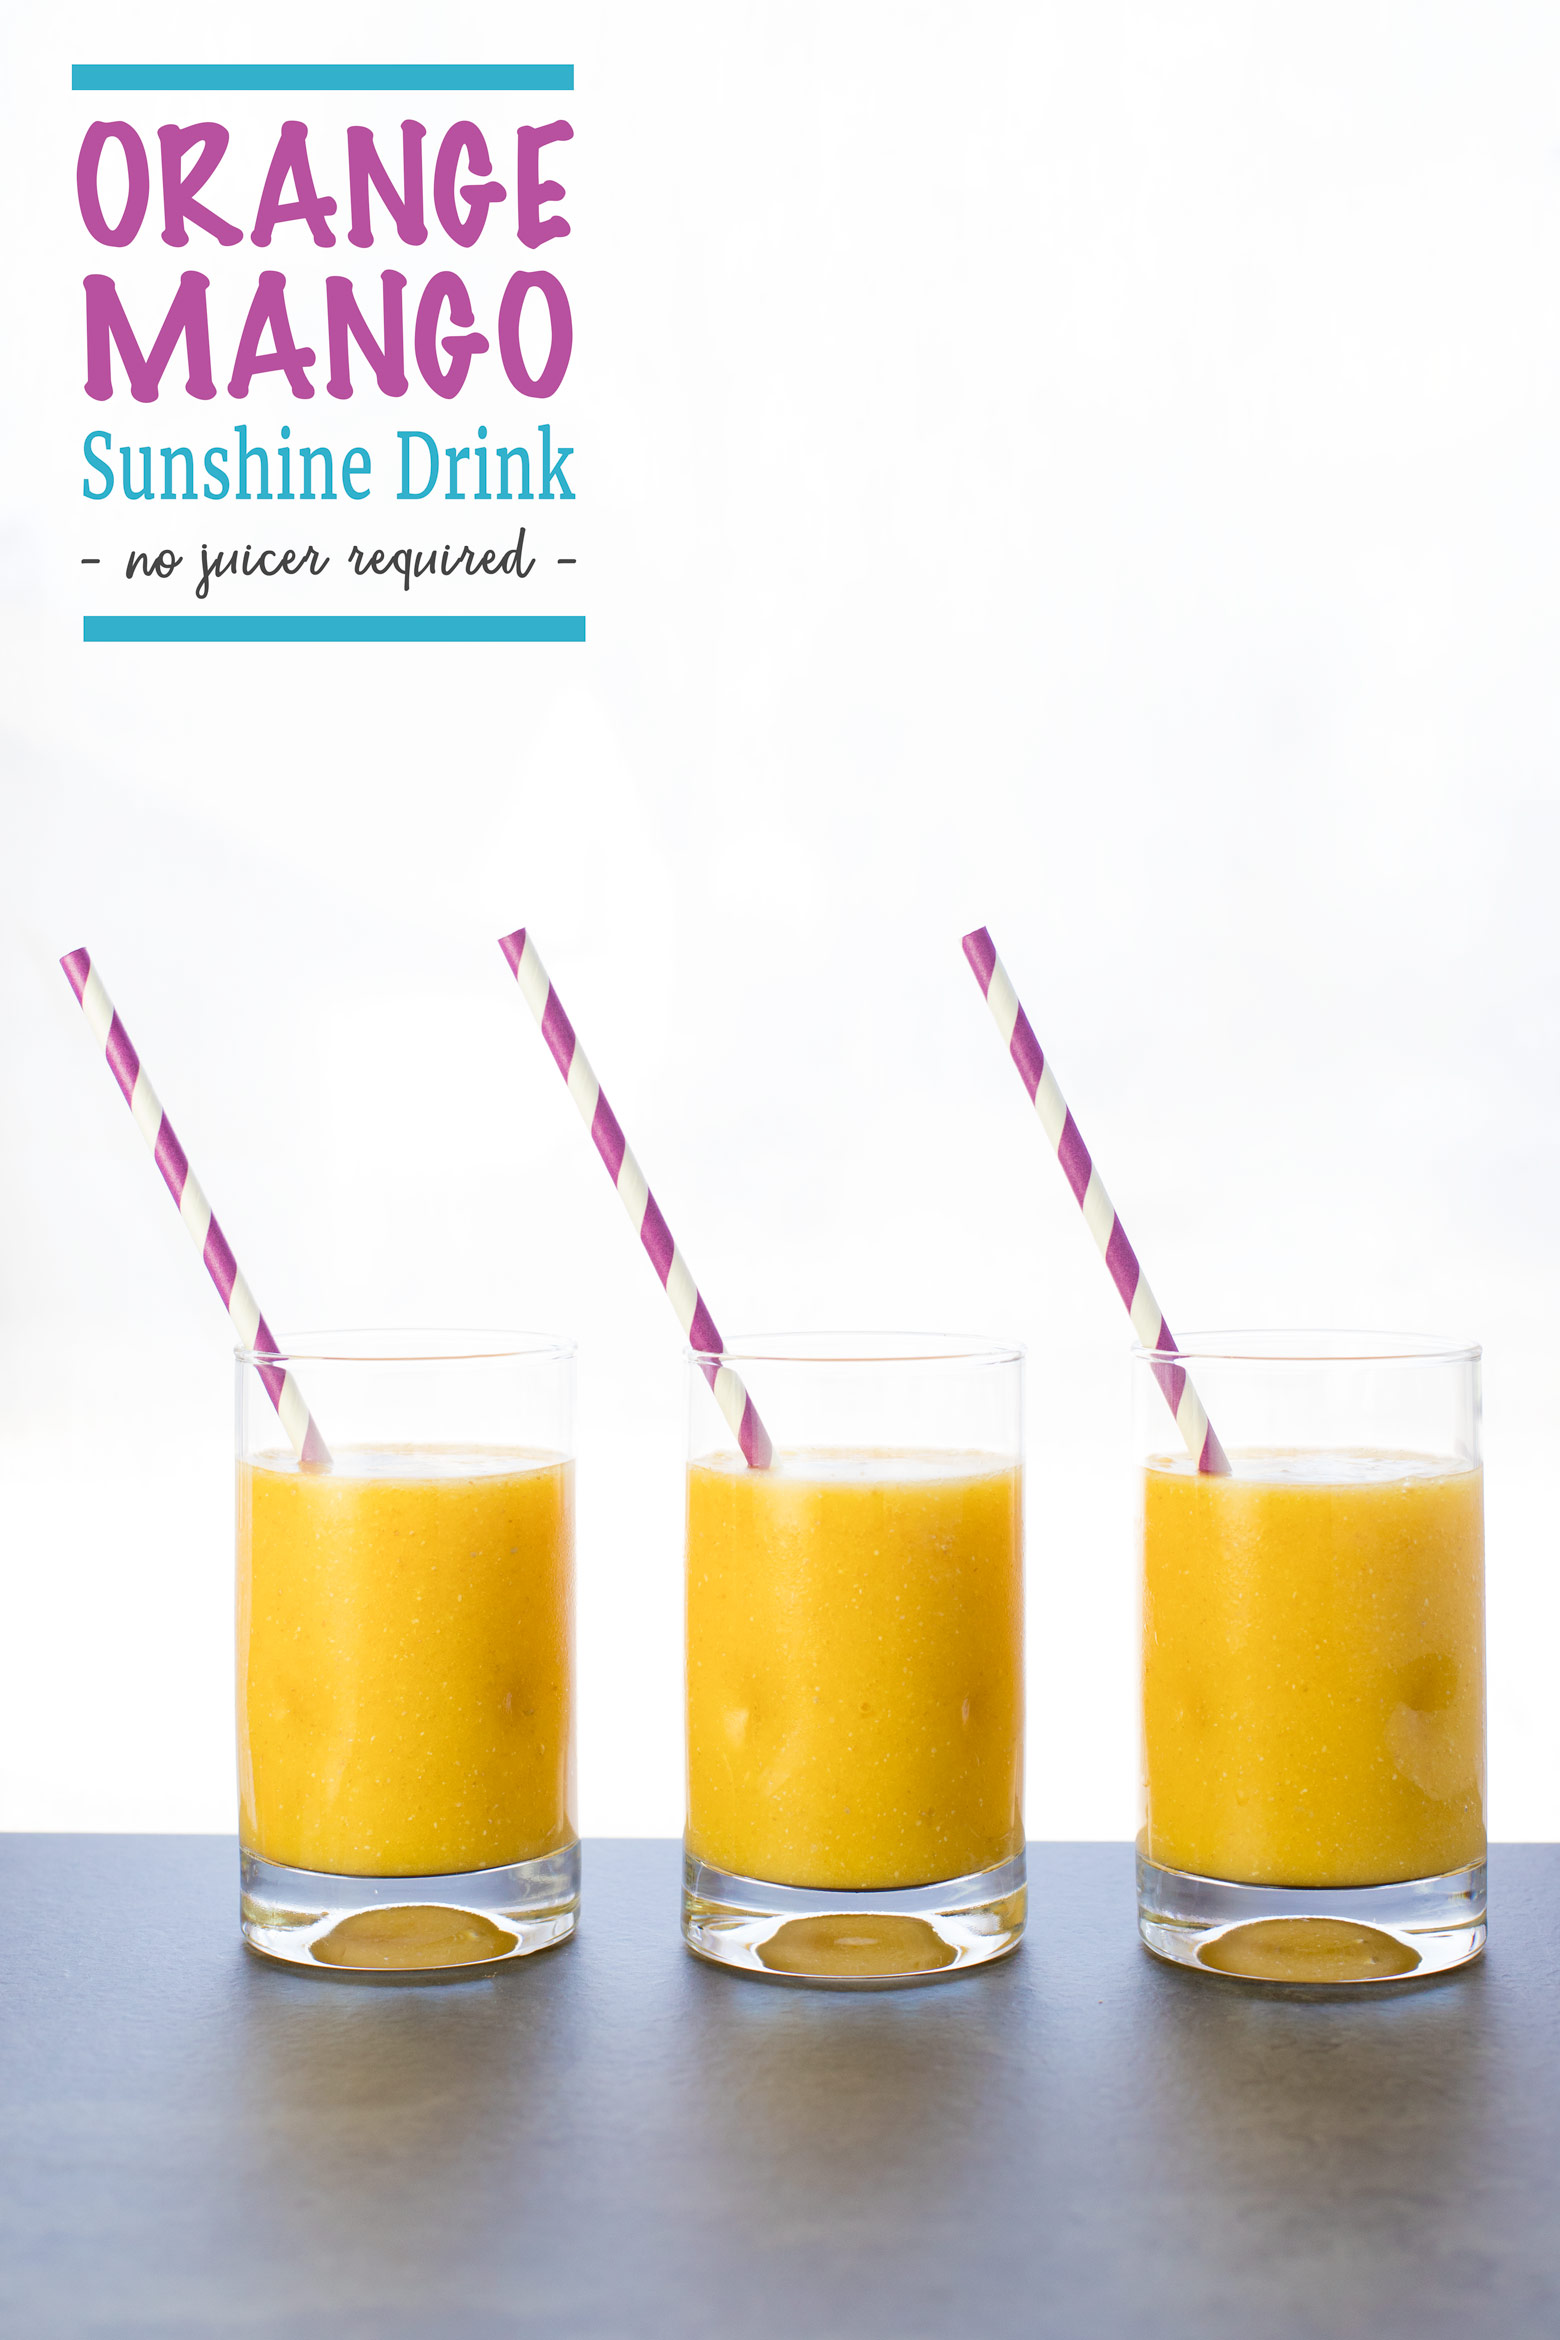 Glasses of orange mango sunshine drink